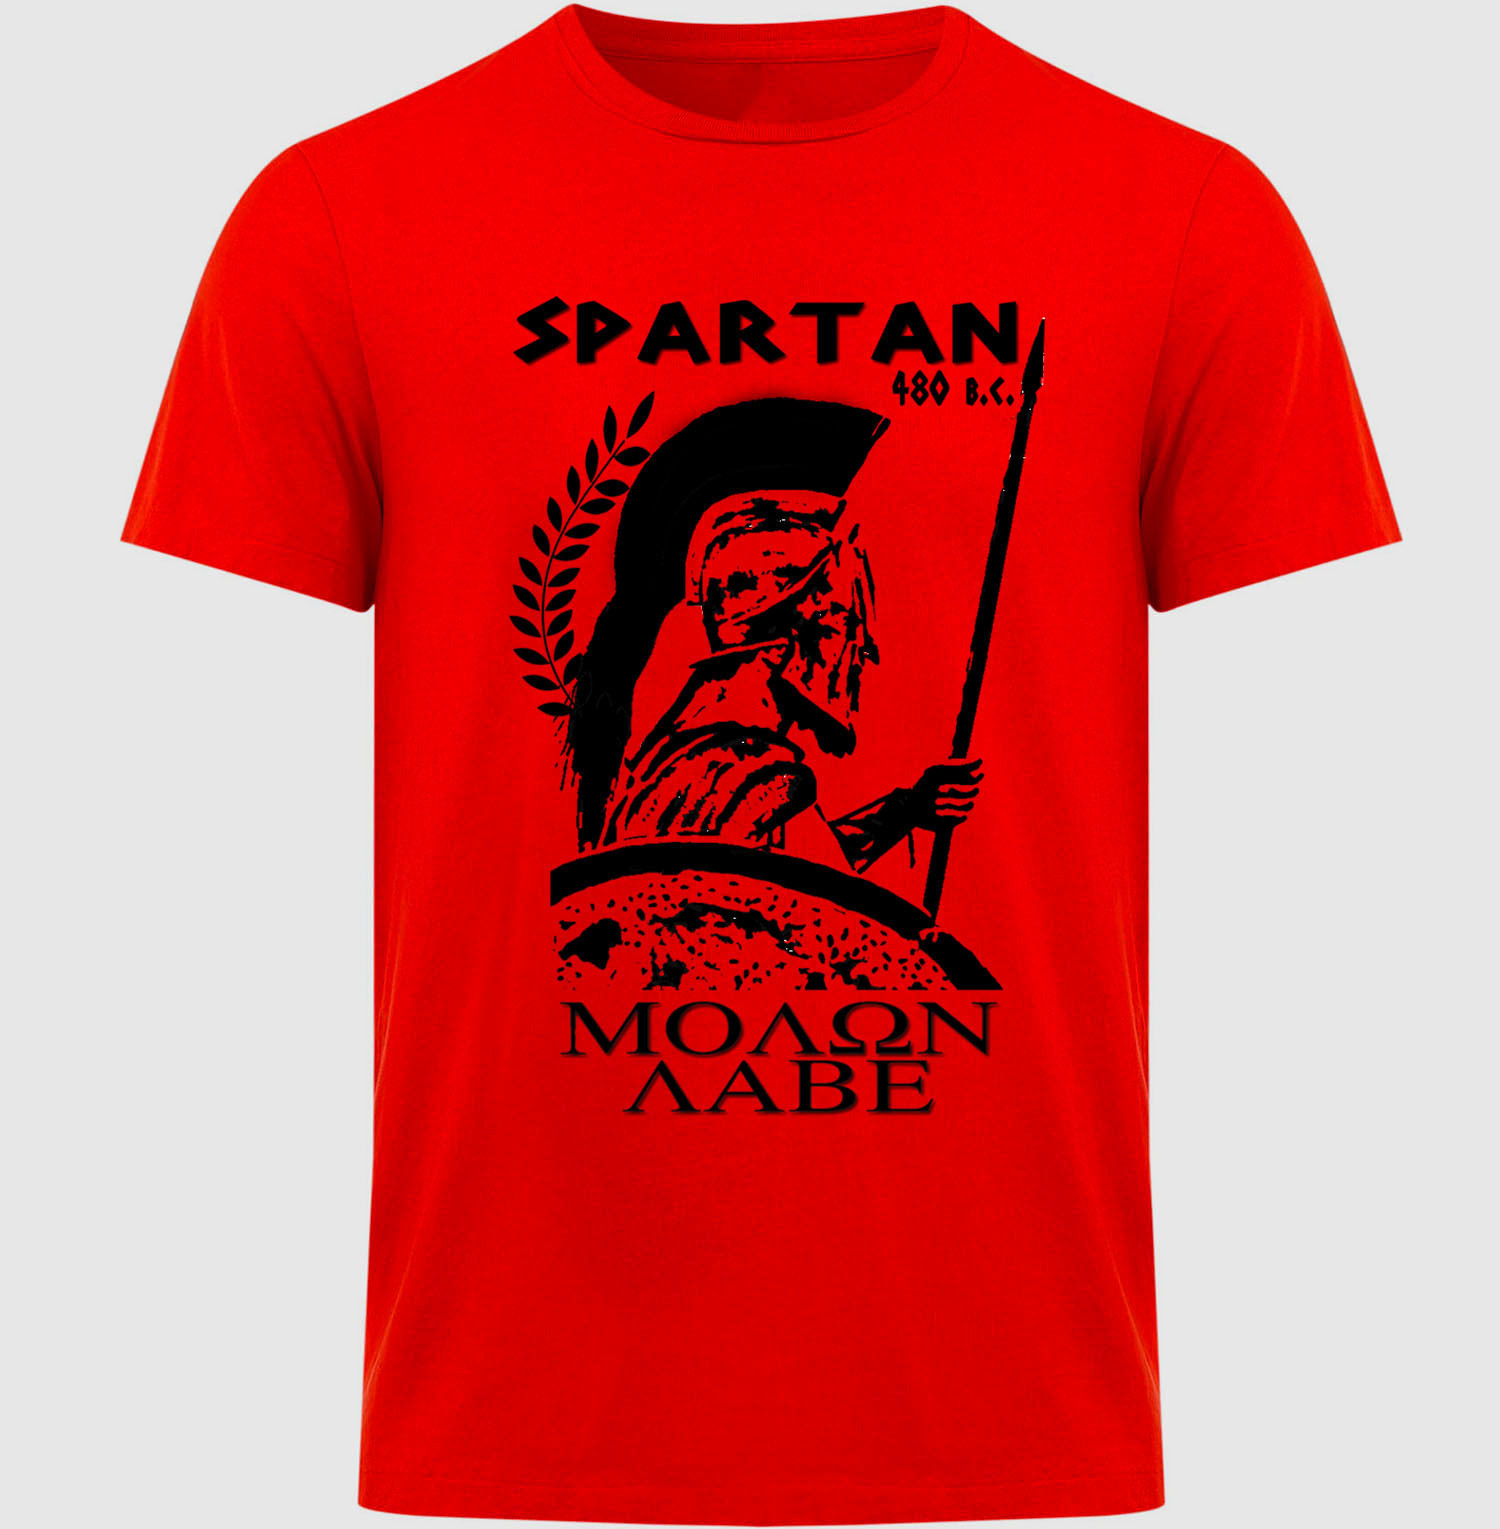 2018 Summer Hot Sale Men T-shirt SPARTAN WARRIOR - NEW COTTON RED TSHIRT